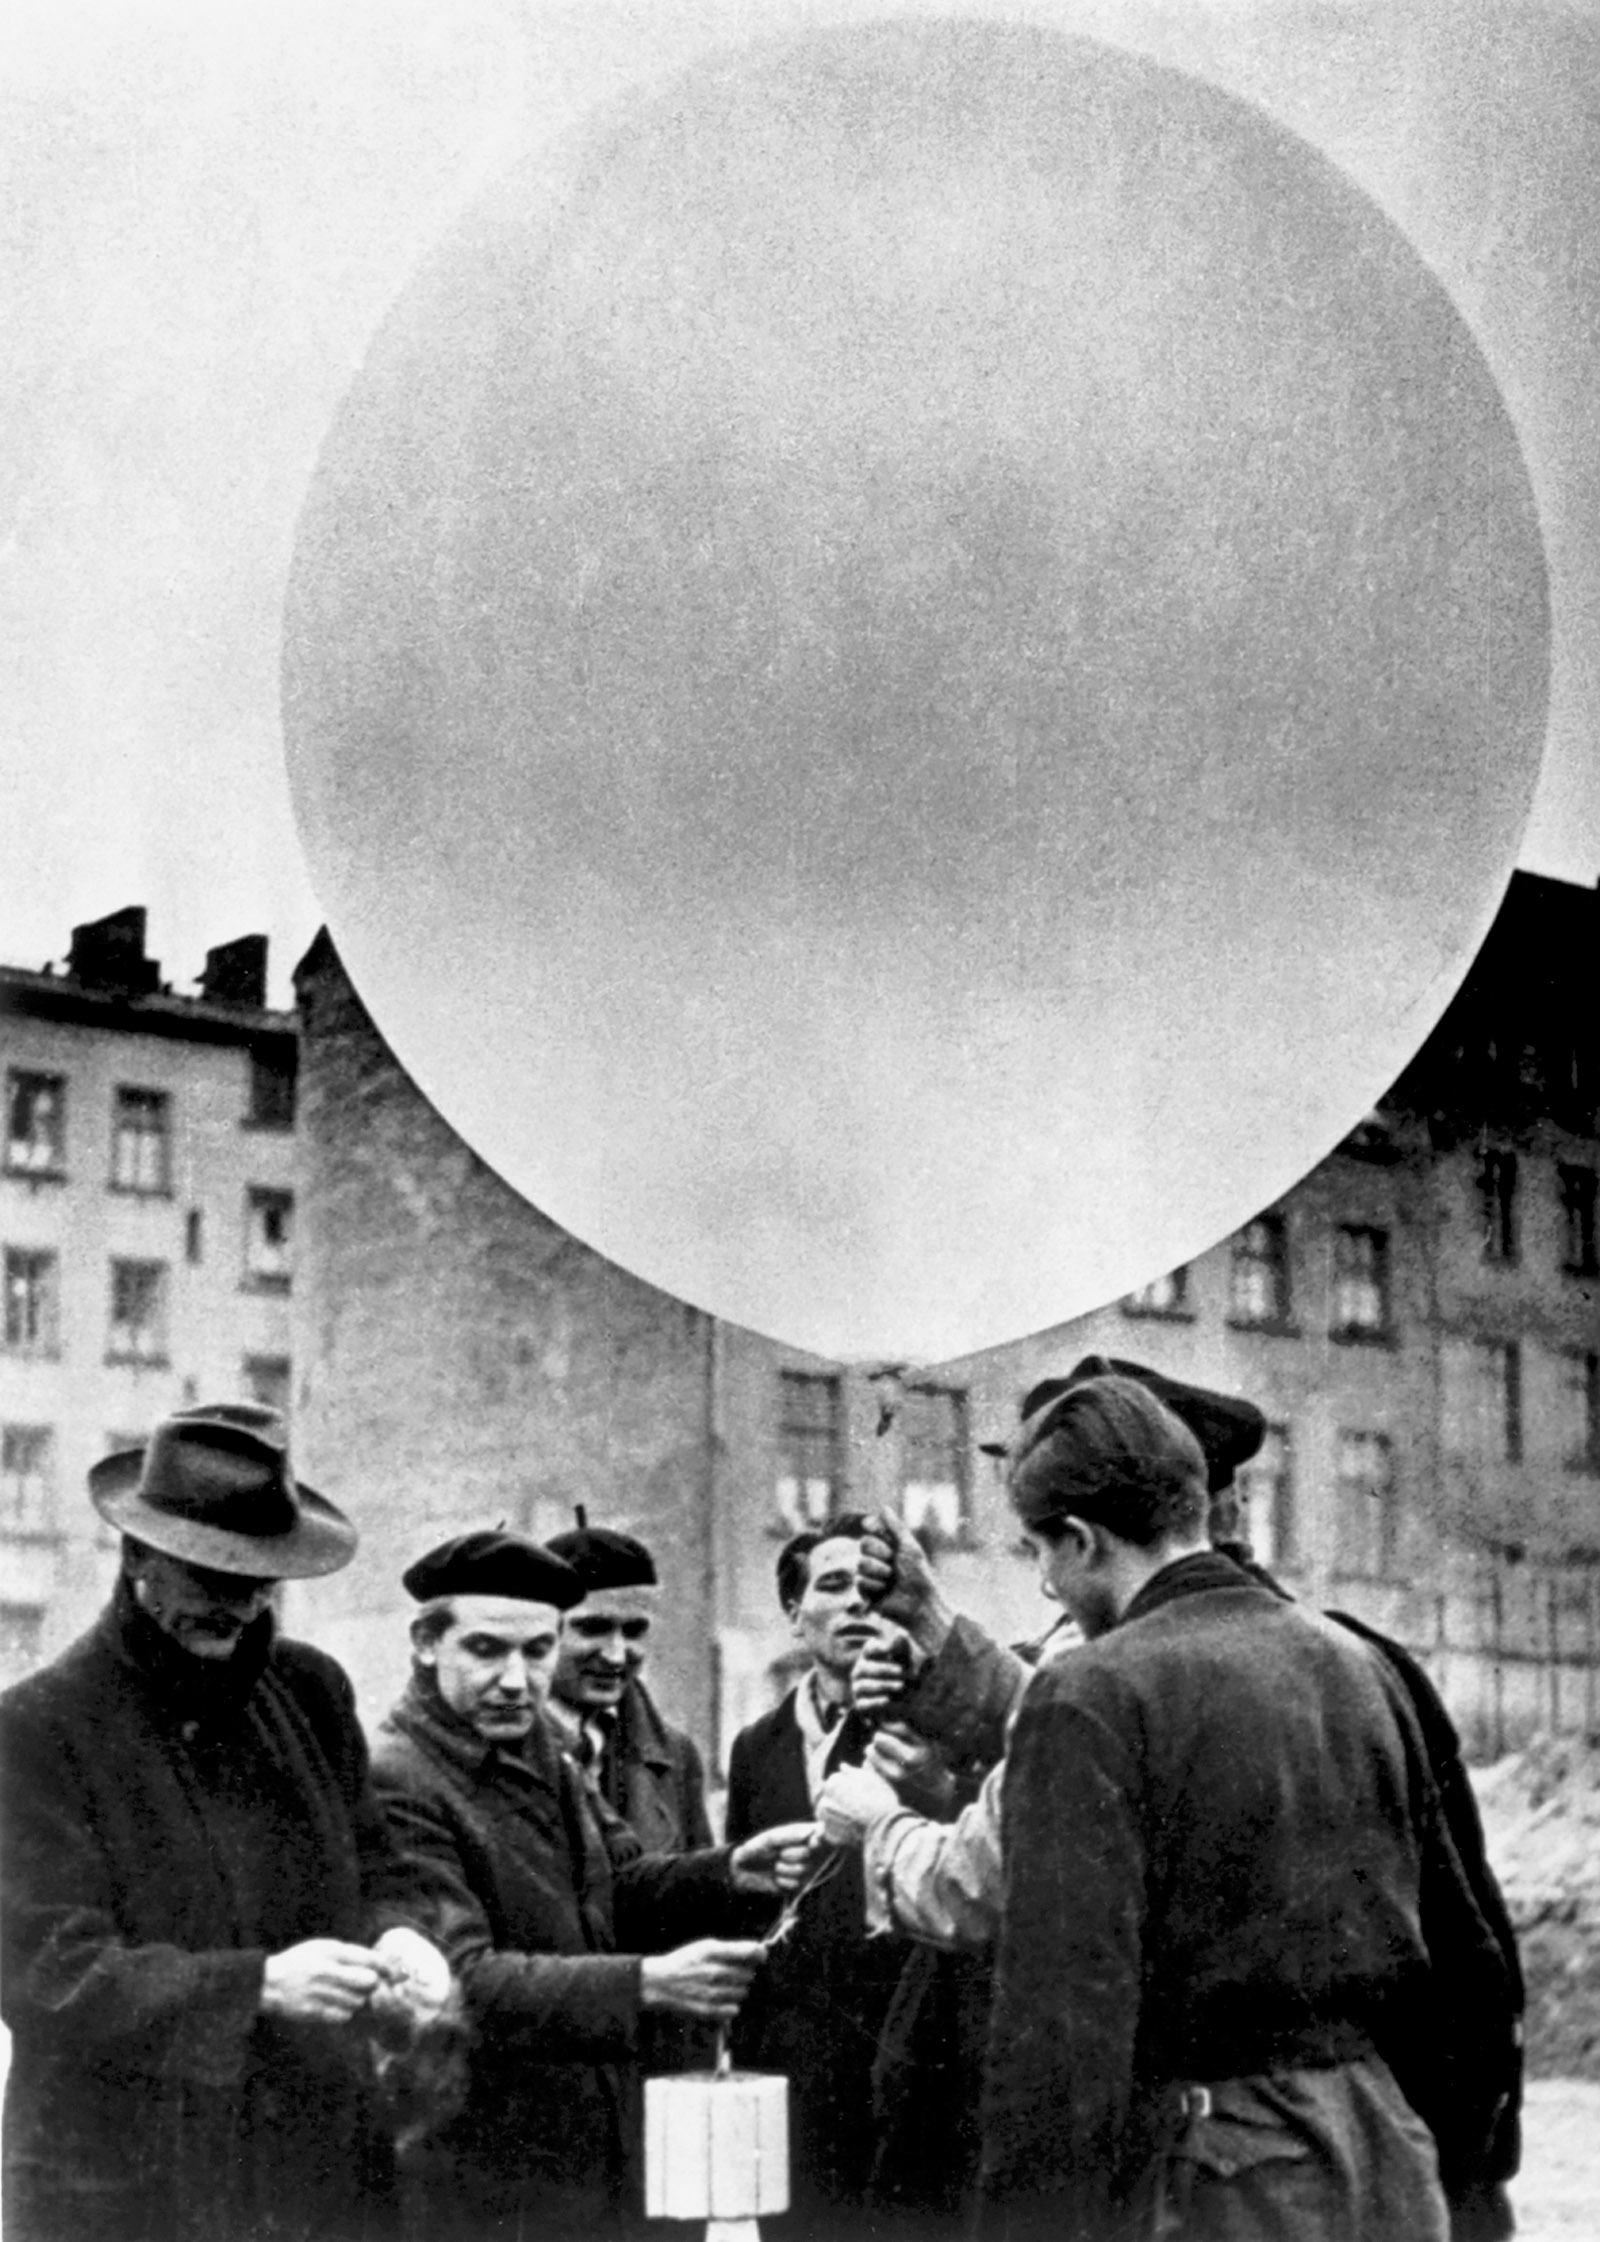 Members of a CIA-sponsored West German group using a weather balloon to deliver leaflets to East Germany, early 1950s